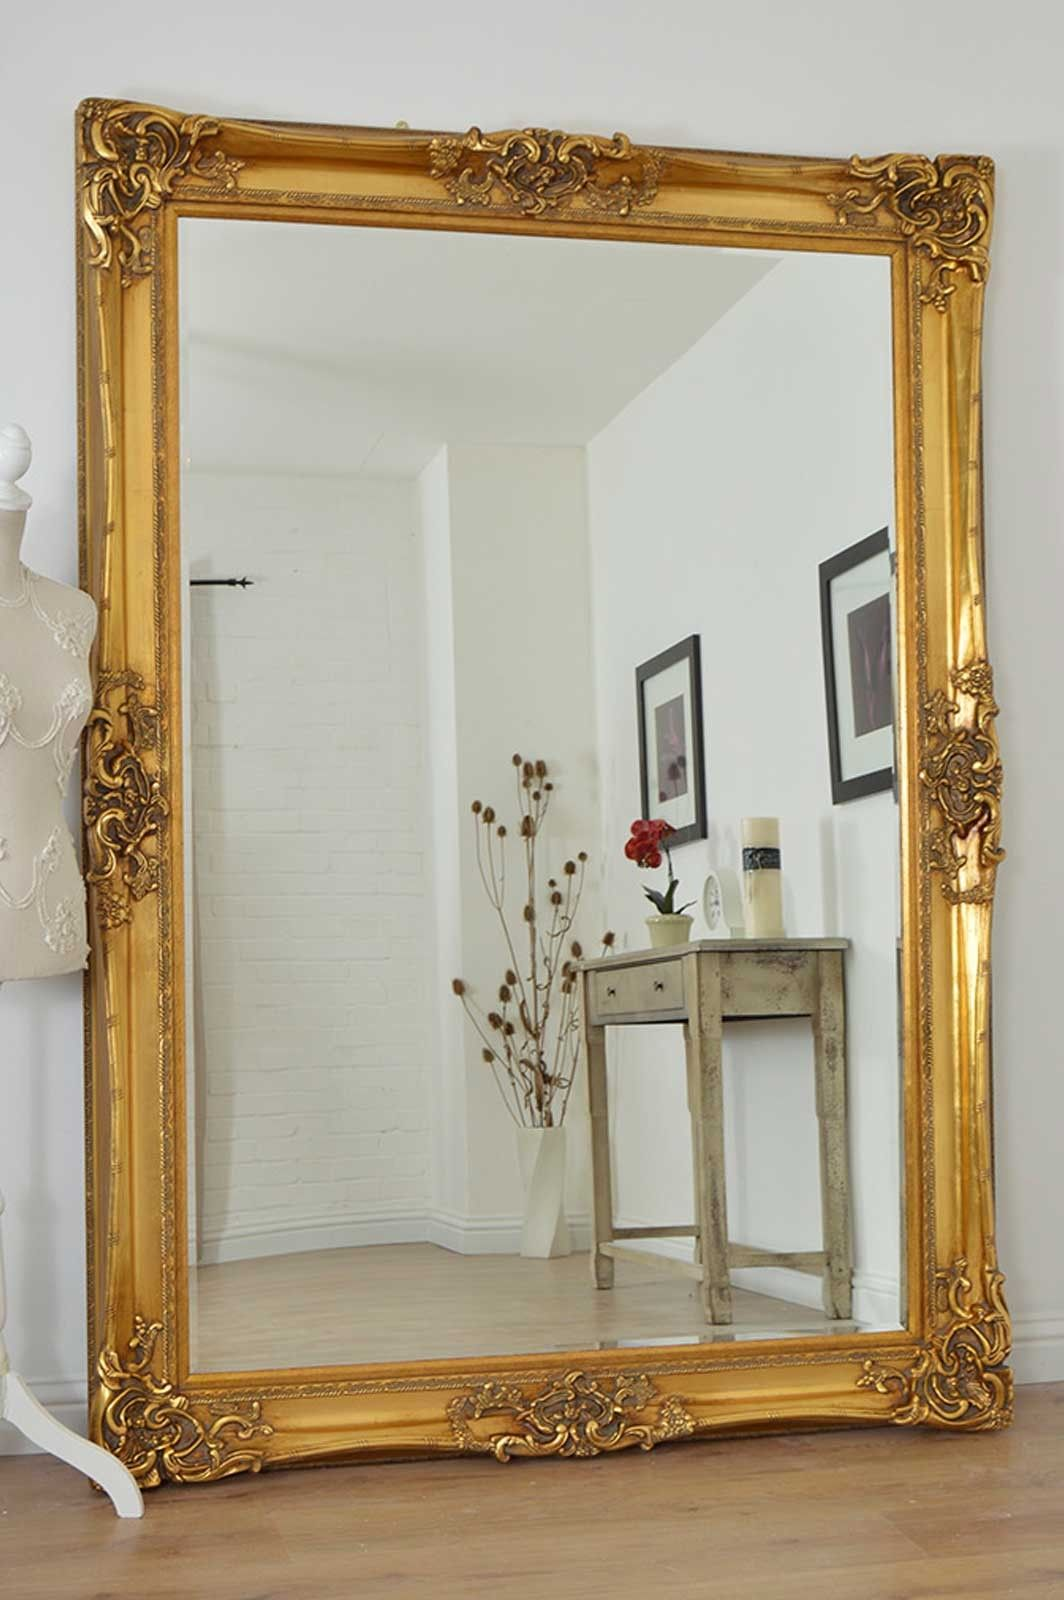 Large gold very ornate antique design wall mirror 7ft x for Tall framed mirror